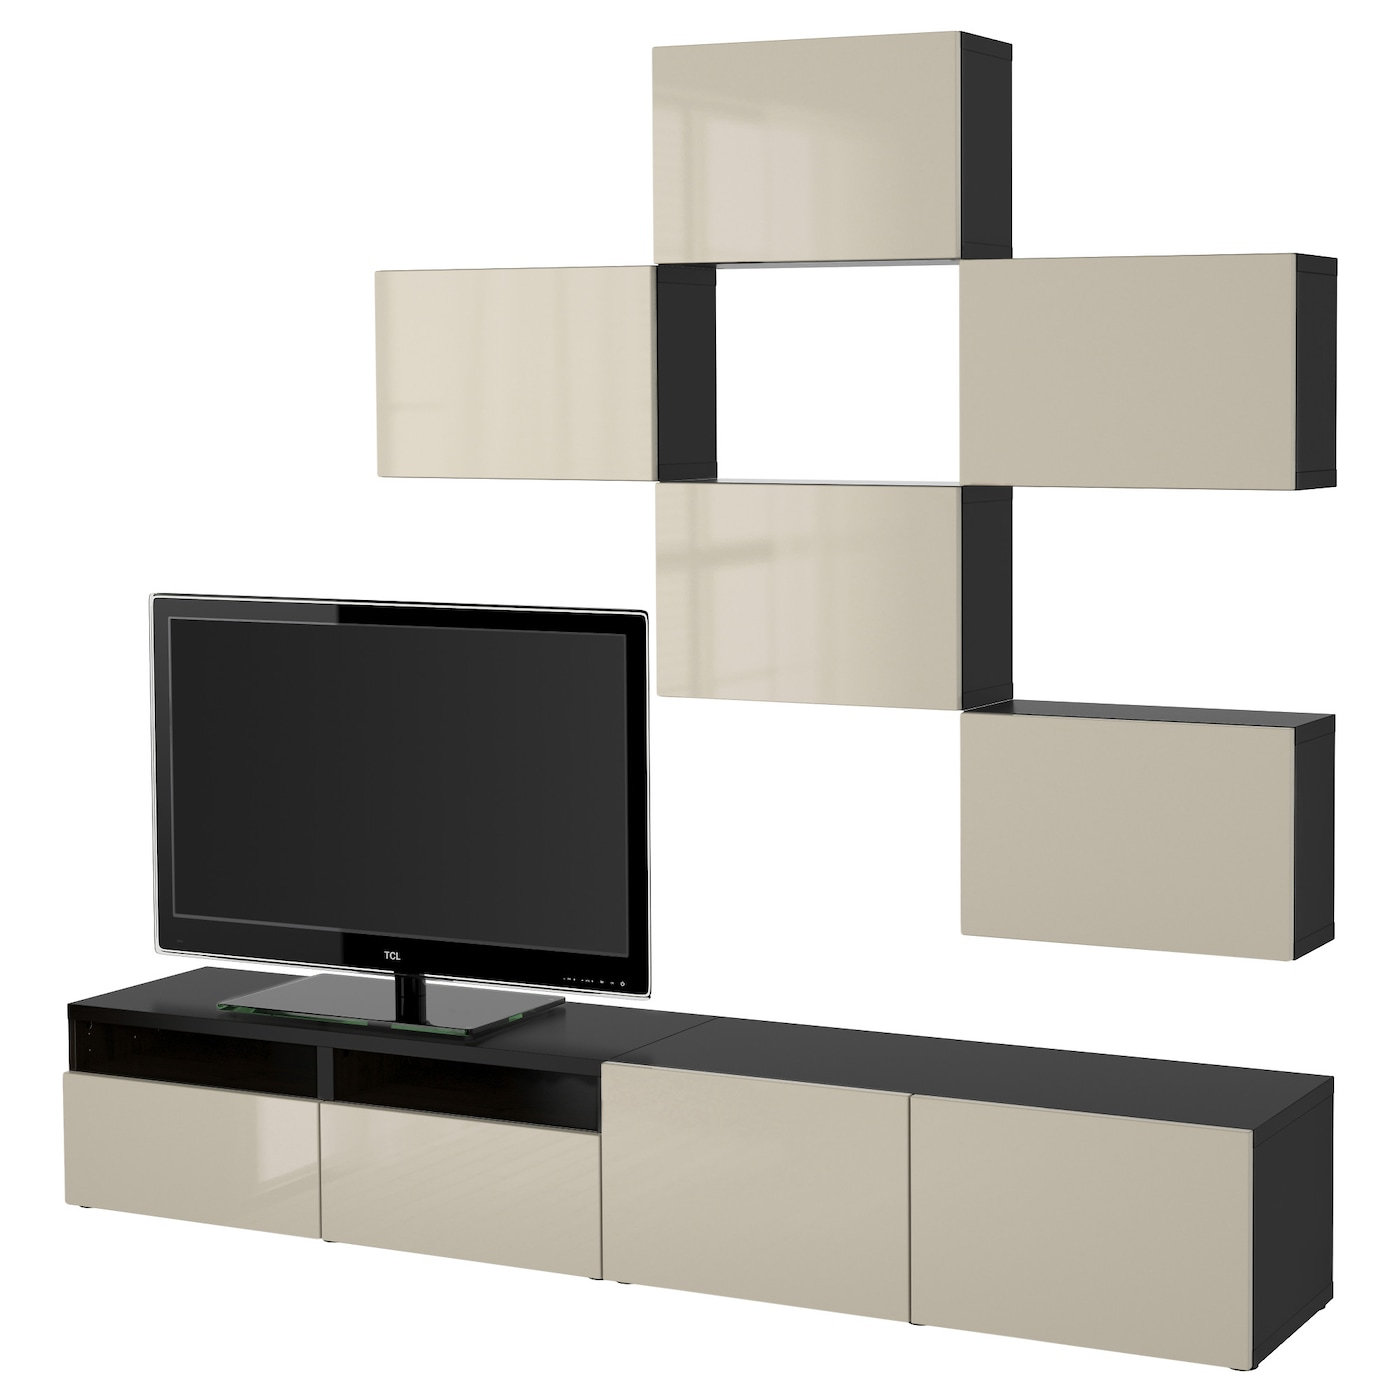 Meuble Tv Combinaison - Best Combinaison Meuble Tv Brun Noir Selsviken Brillant Beige [mjhdah]https://ae01.alicdn.com/kf/HTB1Zln4JXXXXXXUXFXXq6xXFXXXQ/Meuble-TV-mur-de-combinaison-cr-ative-mode-meuble-TV-simple-et-moderne-meubles-de-salon.jpg